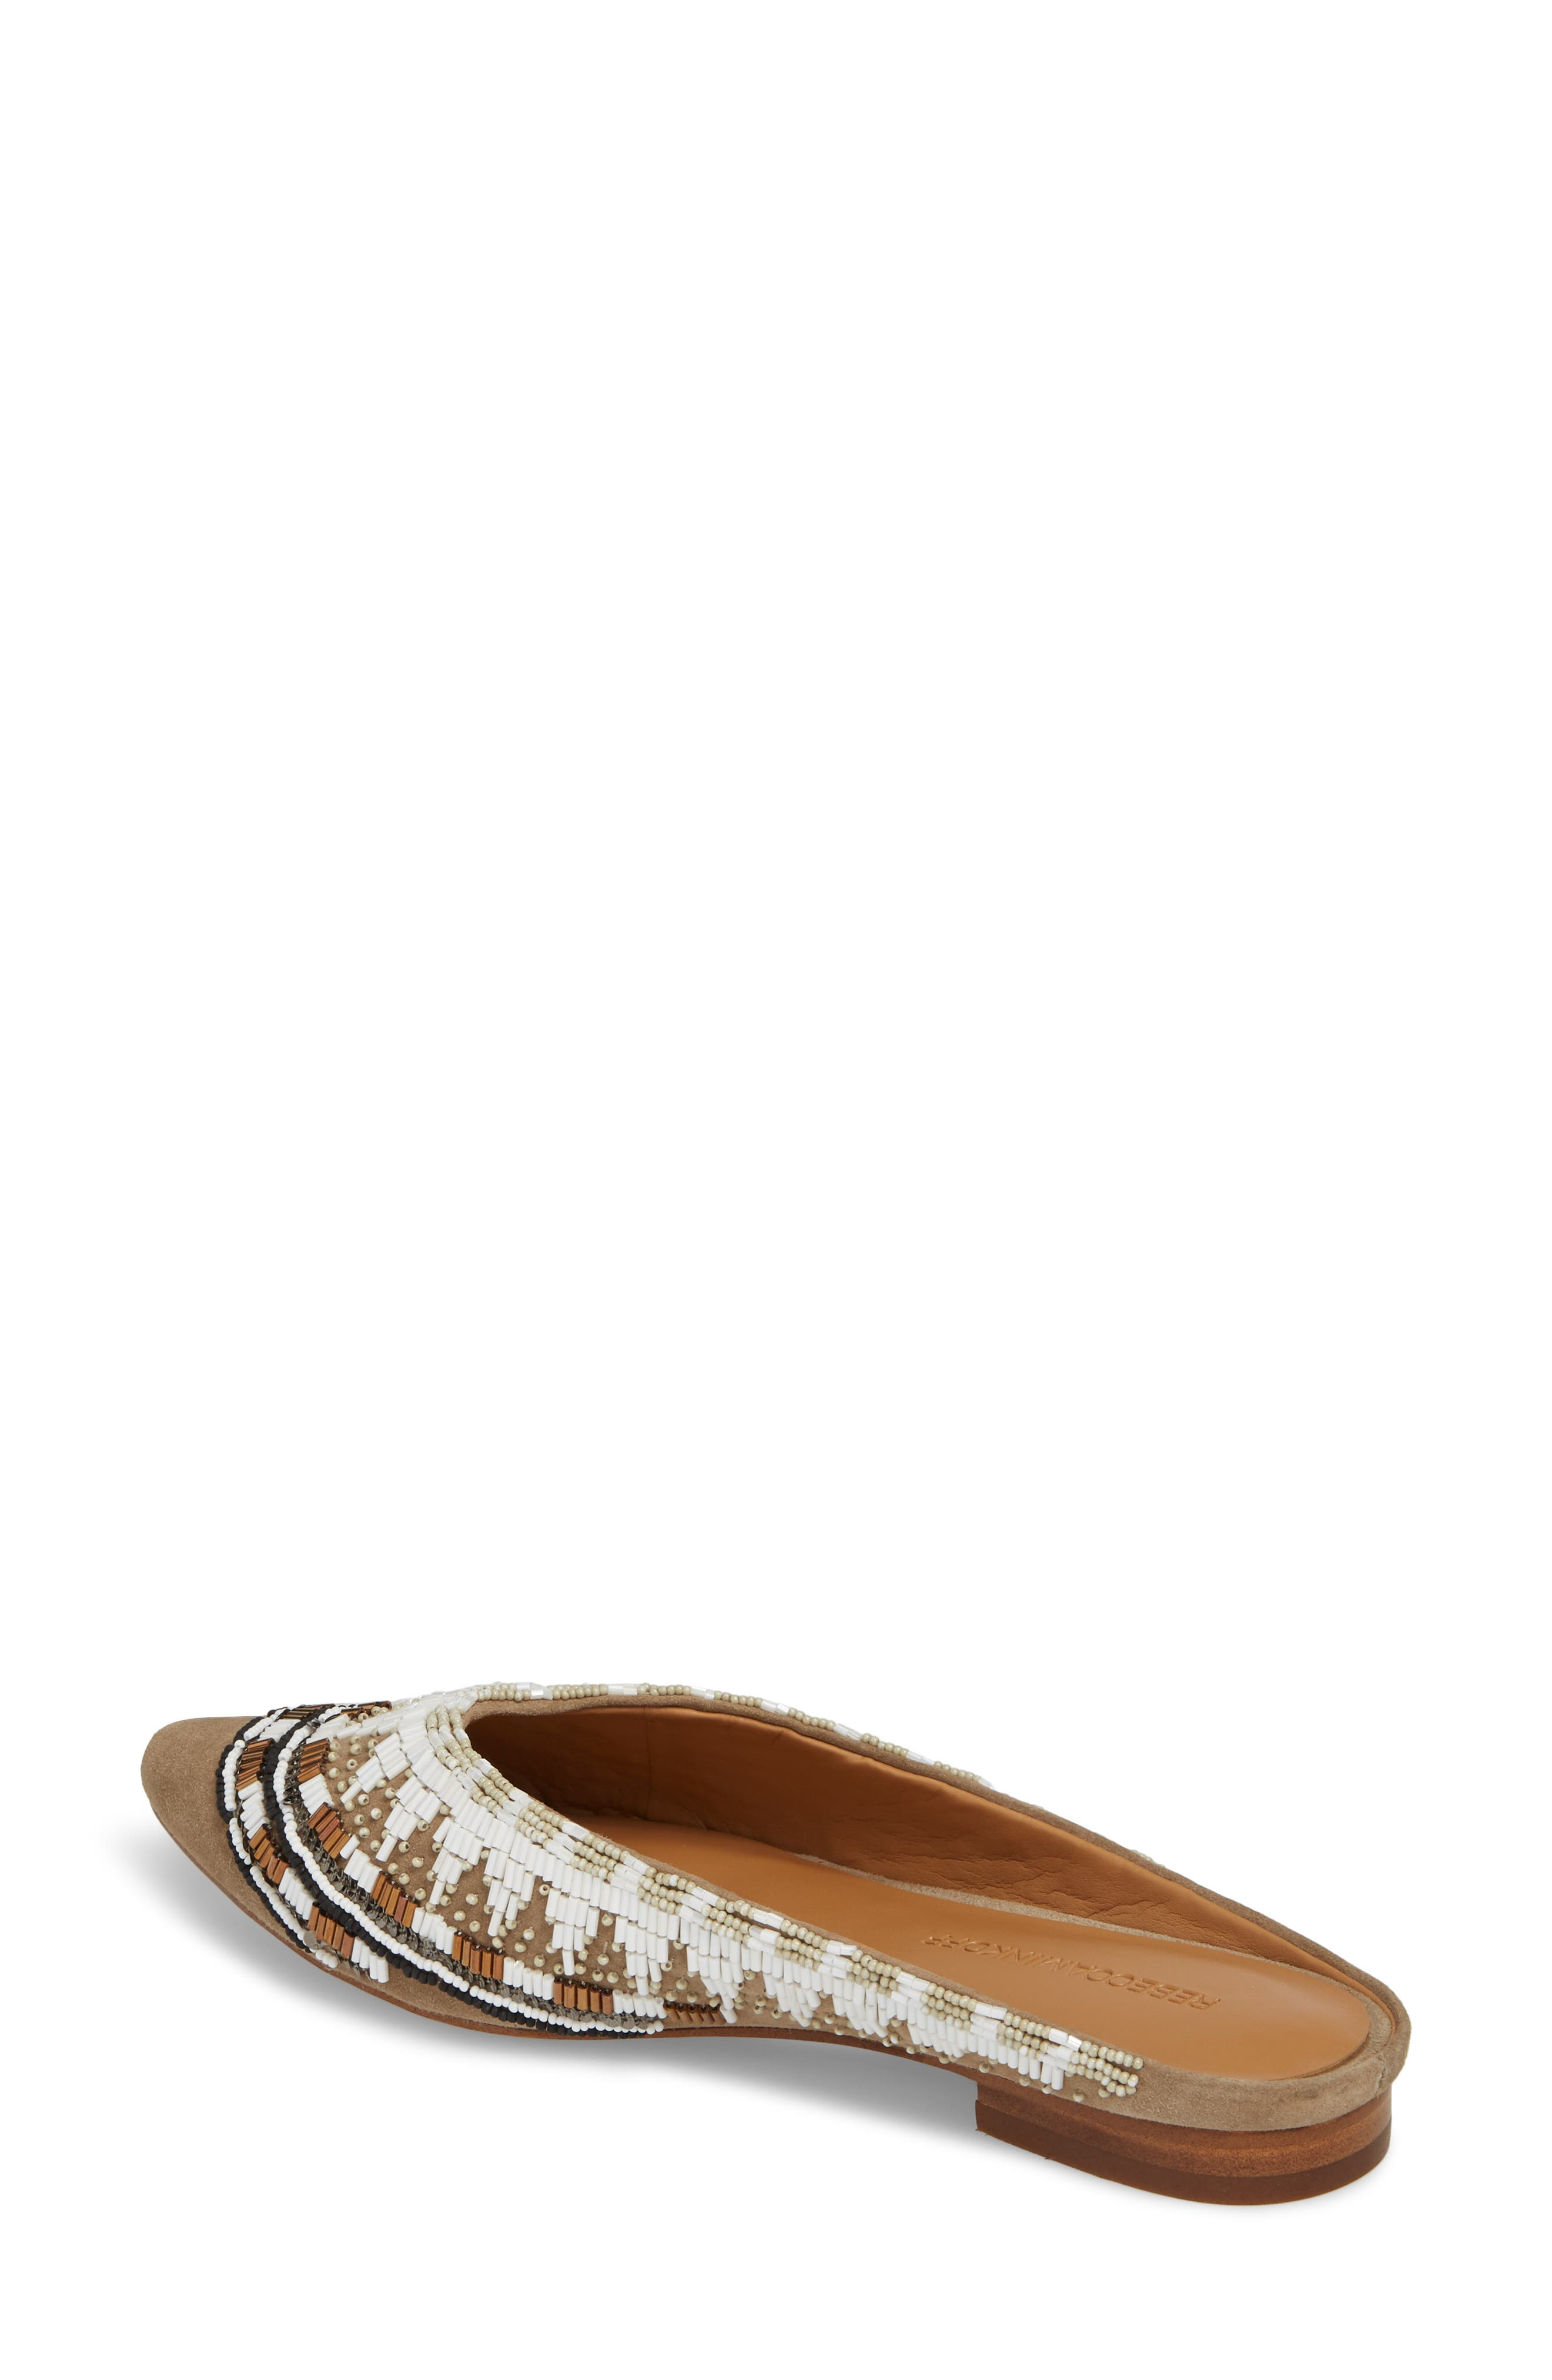 Roxane Beaded Flat Mule,                             Alternate thumbnail 2, color,                             TAUPE SUEDE